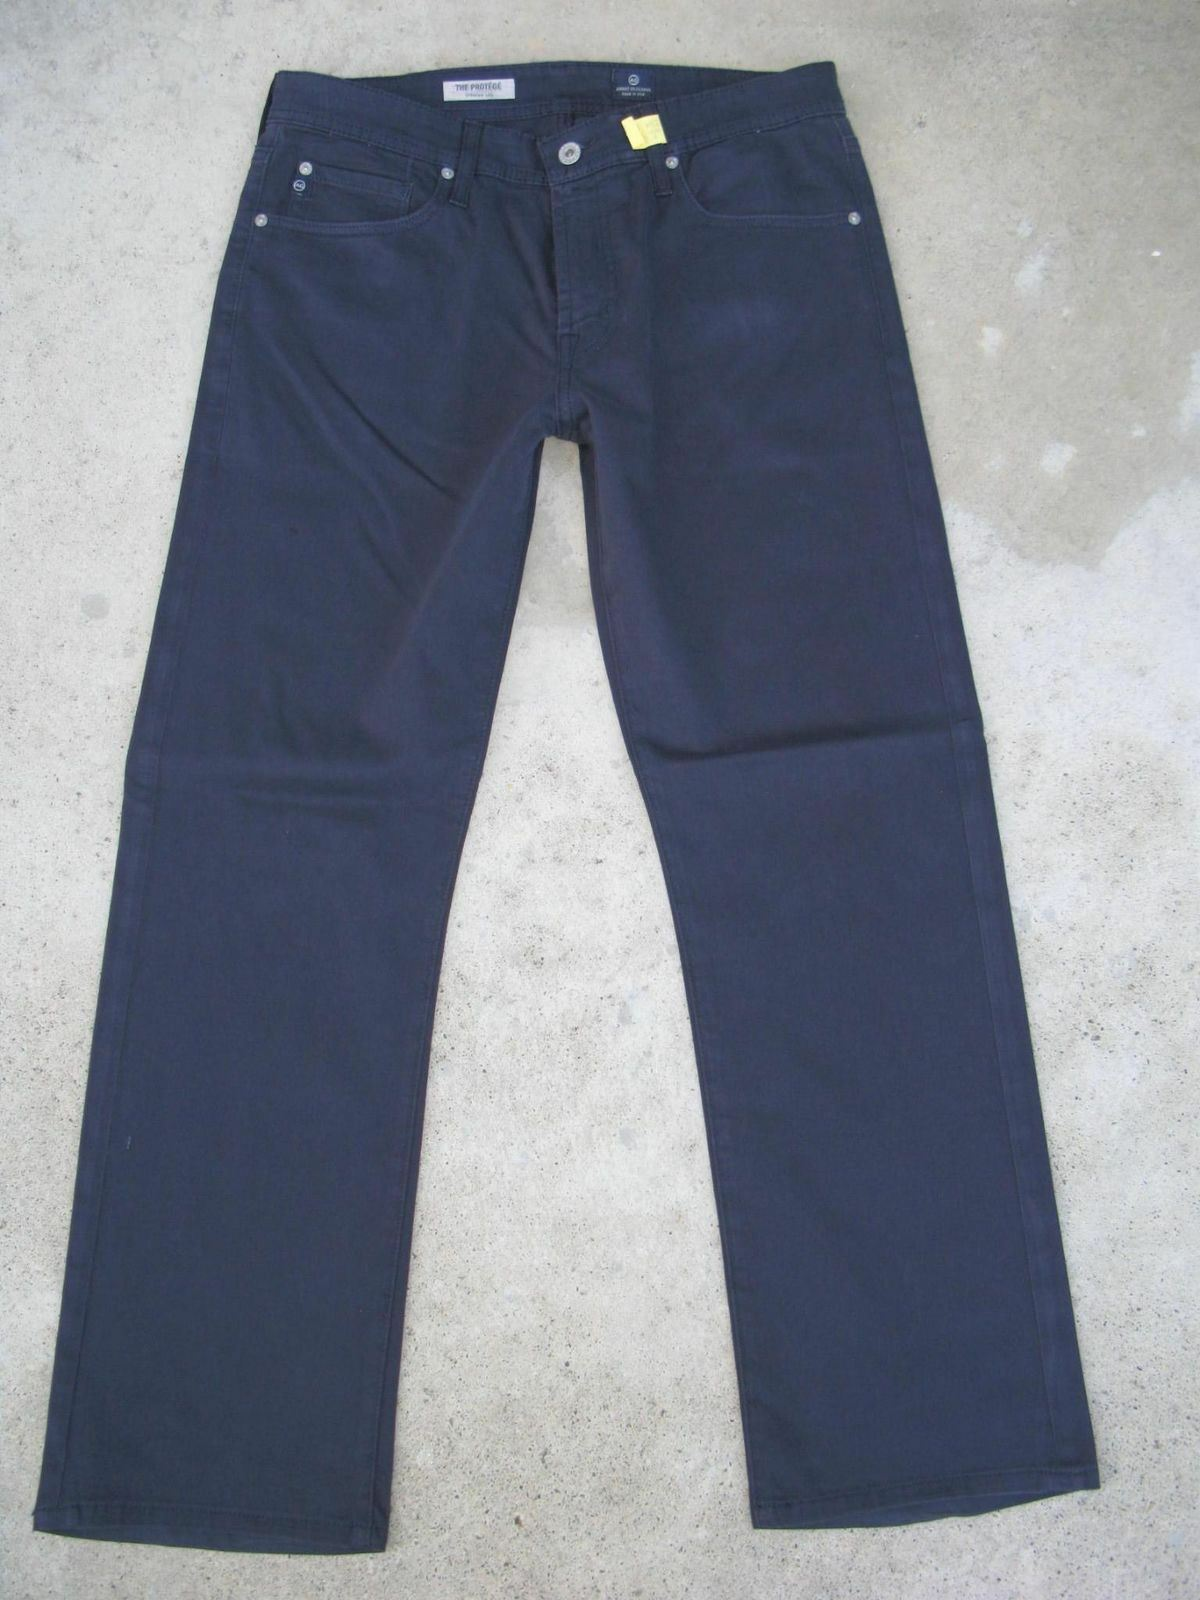 AG ADRIANO goldSCHMIED Mens Jeans   Pants Predege 32 X 29 Straight Leg bluee